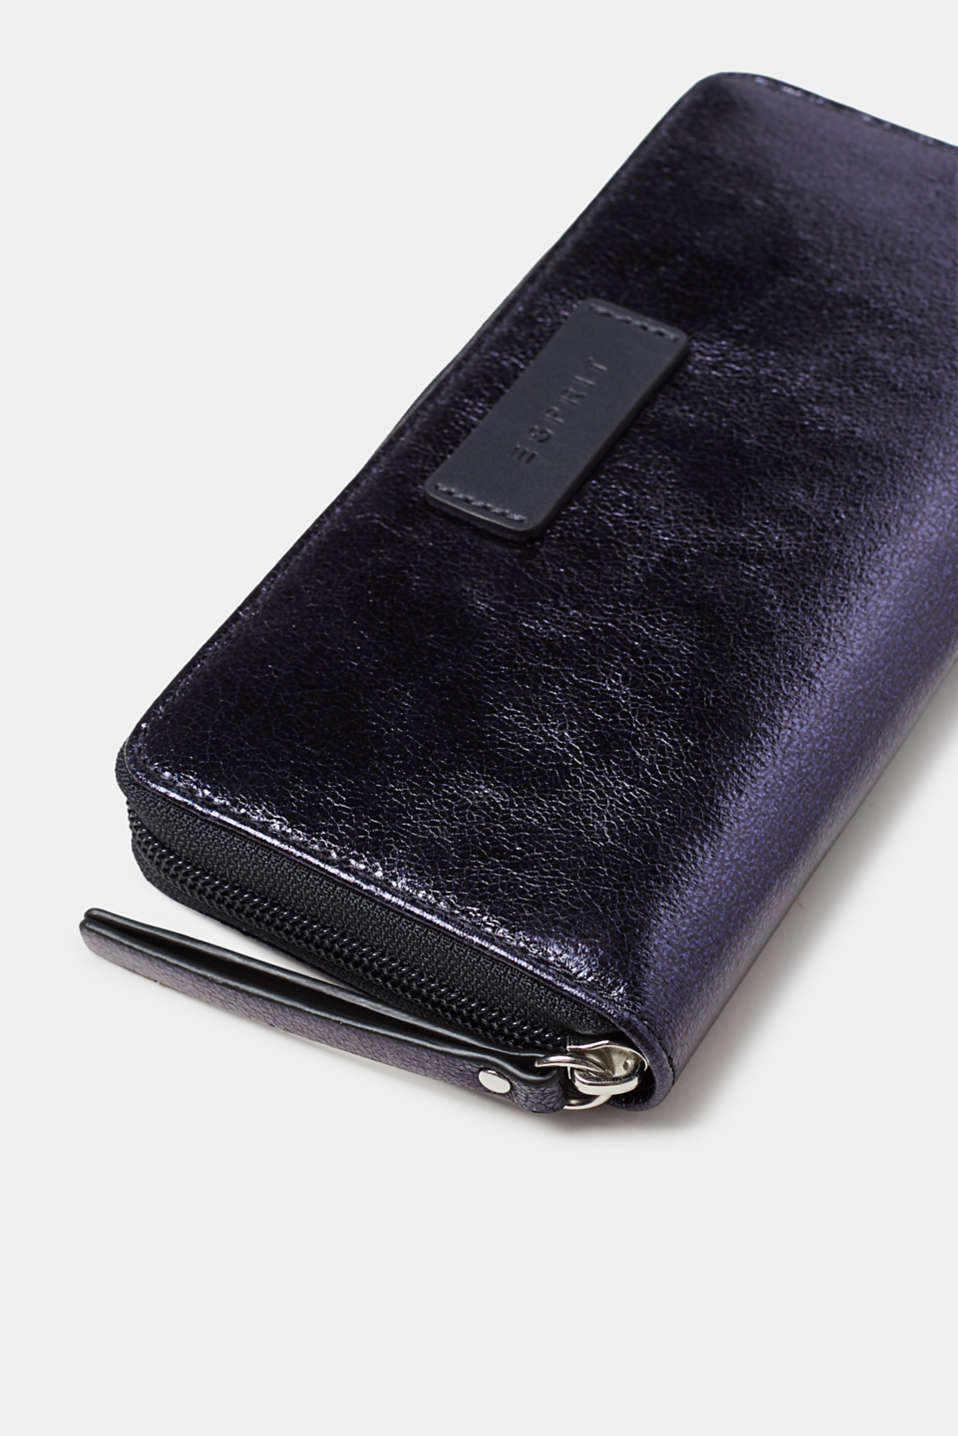 Wallet with a zip, in a trendy metallic look